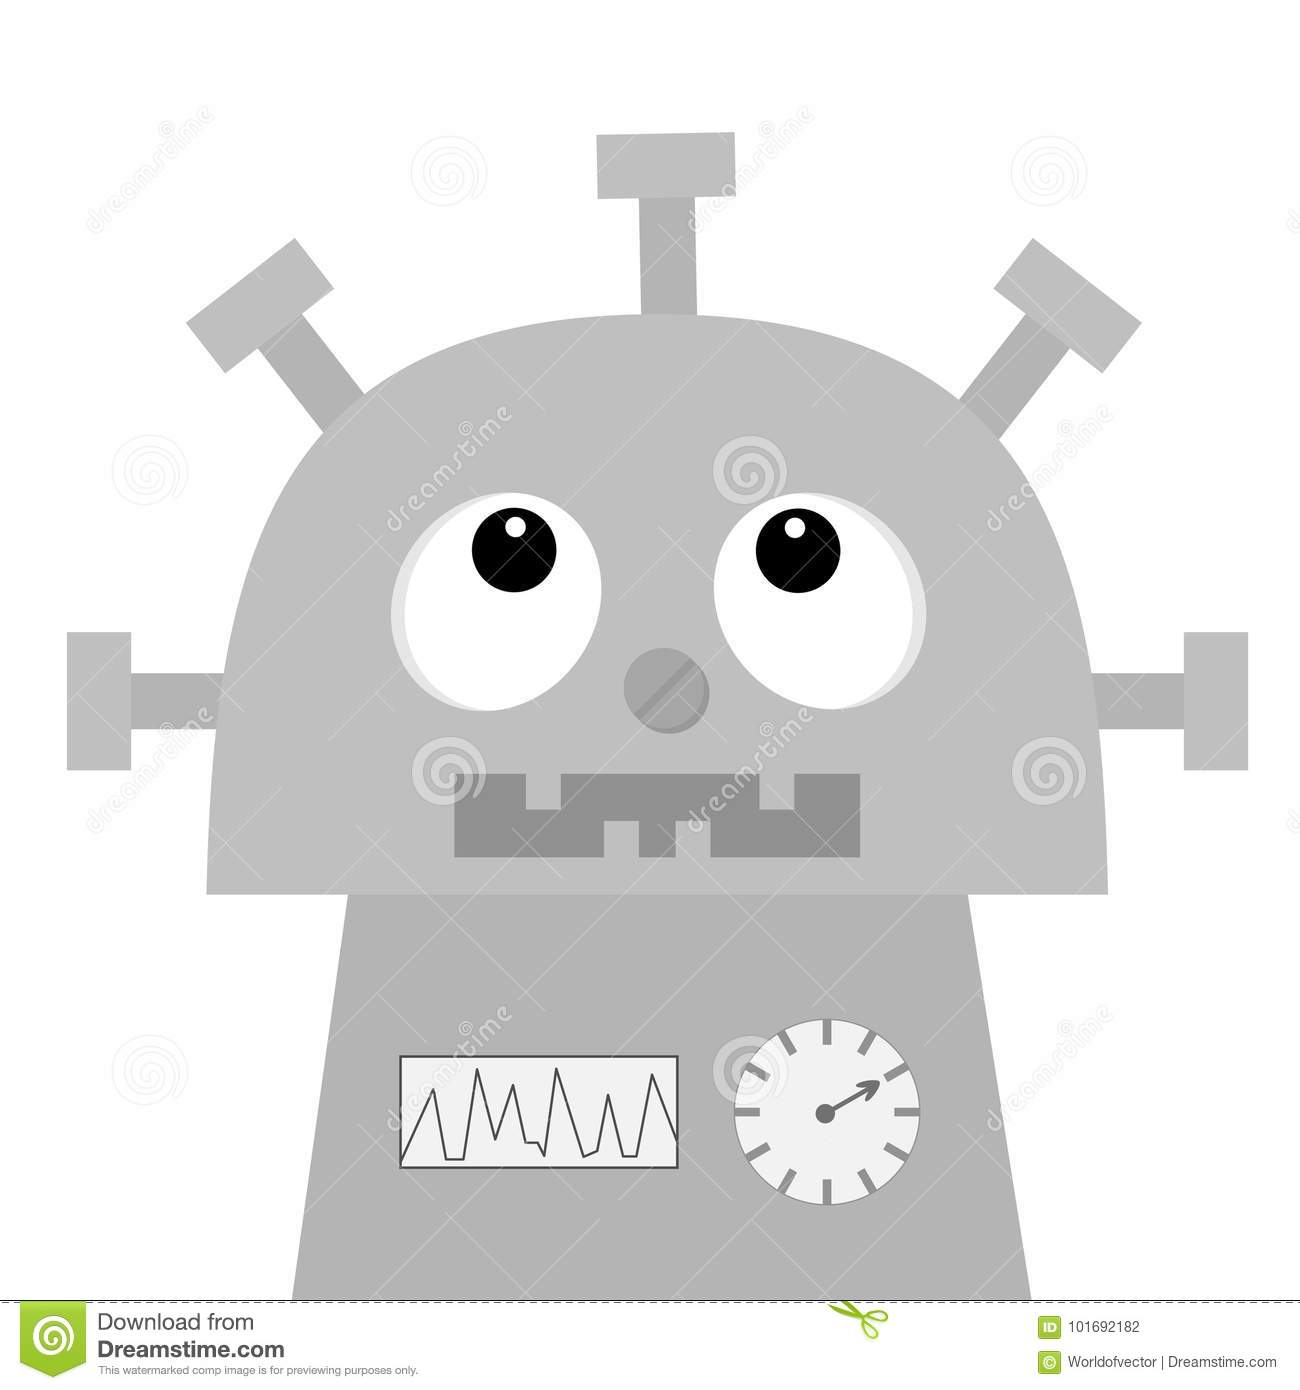 Robot Looking Up Nose Clock Heart Diagram Open Mouth With Tooth Rh  Dreamstime Com Cute Baby Diaper Bags Baby Growing Chart